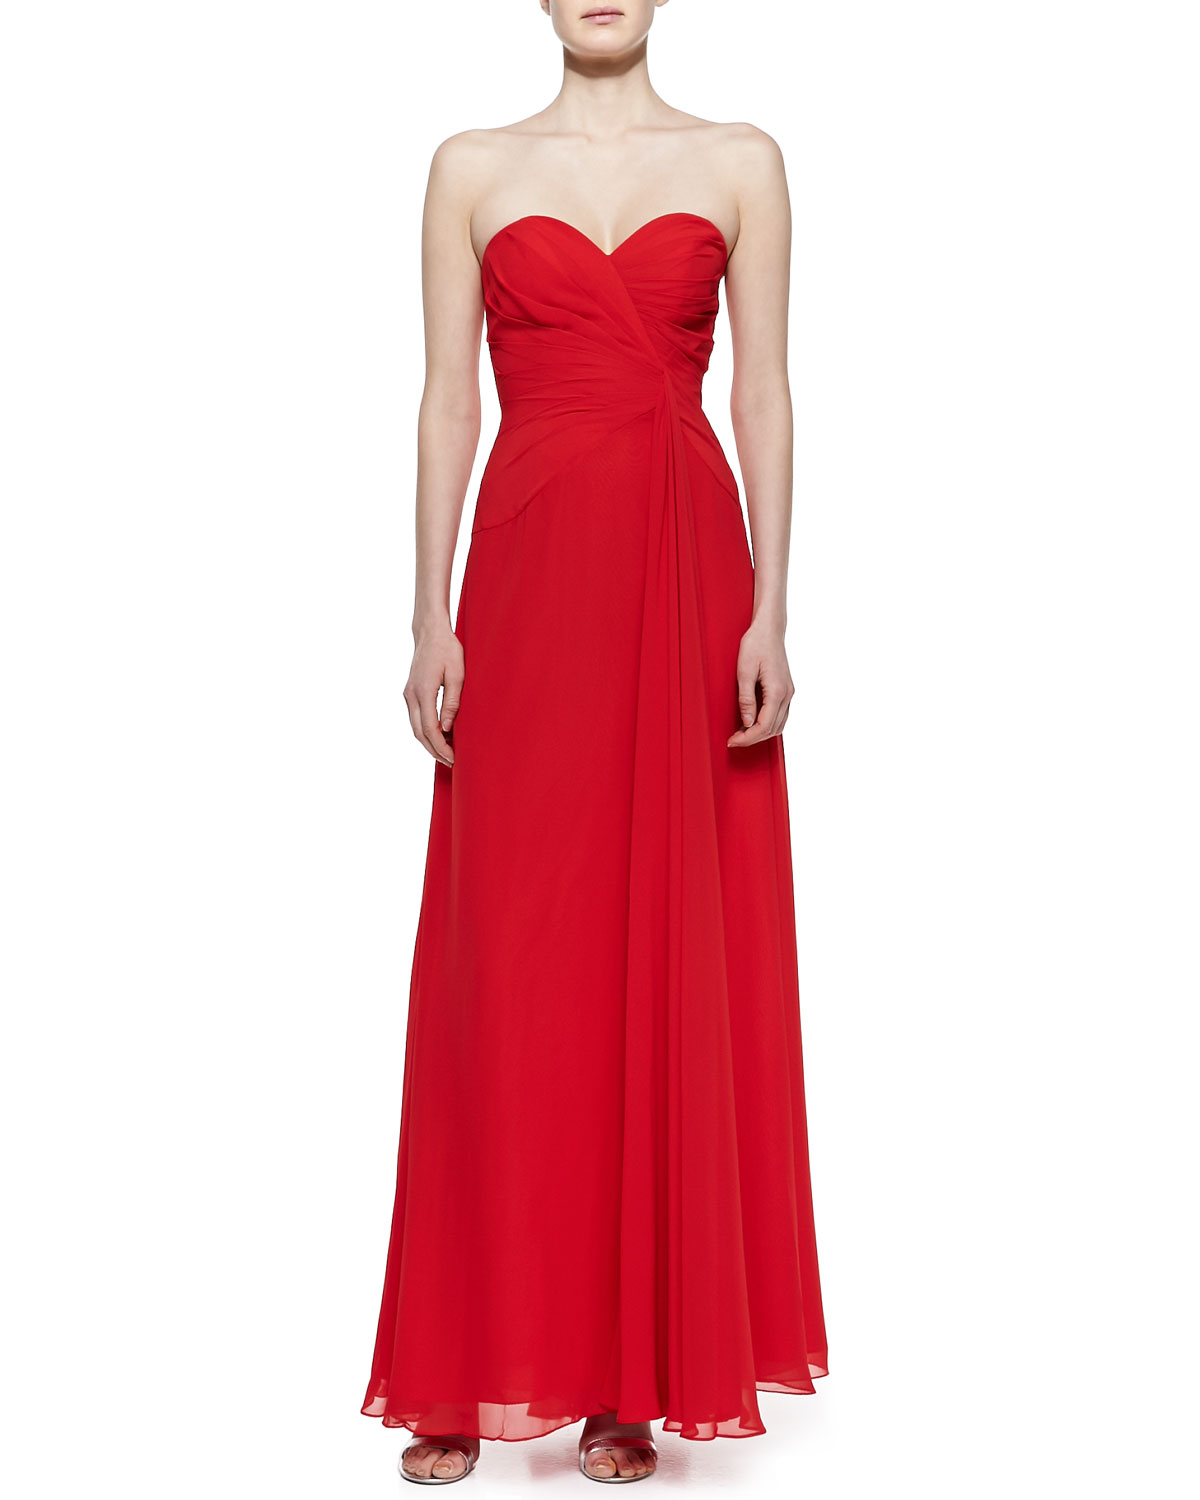 Womens Strapless Draped Gown, Red   Faviana